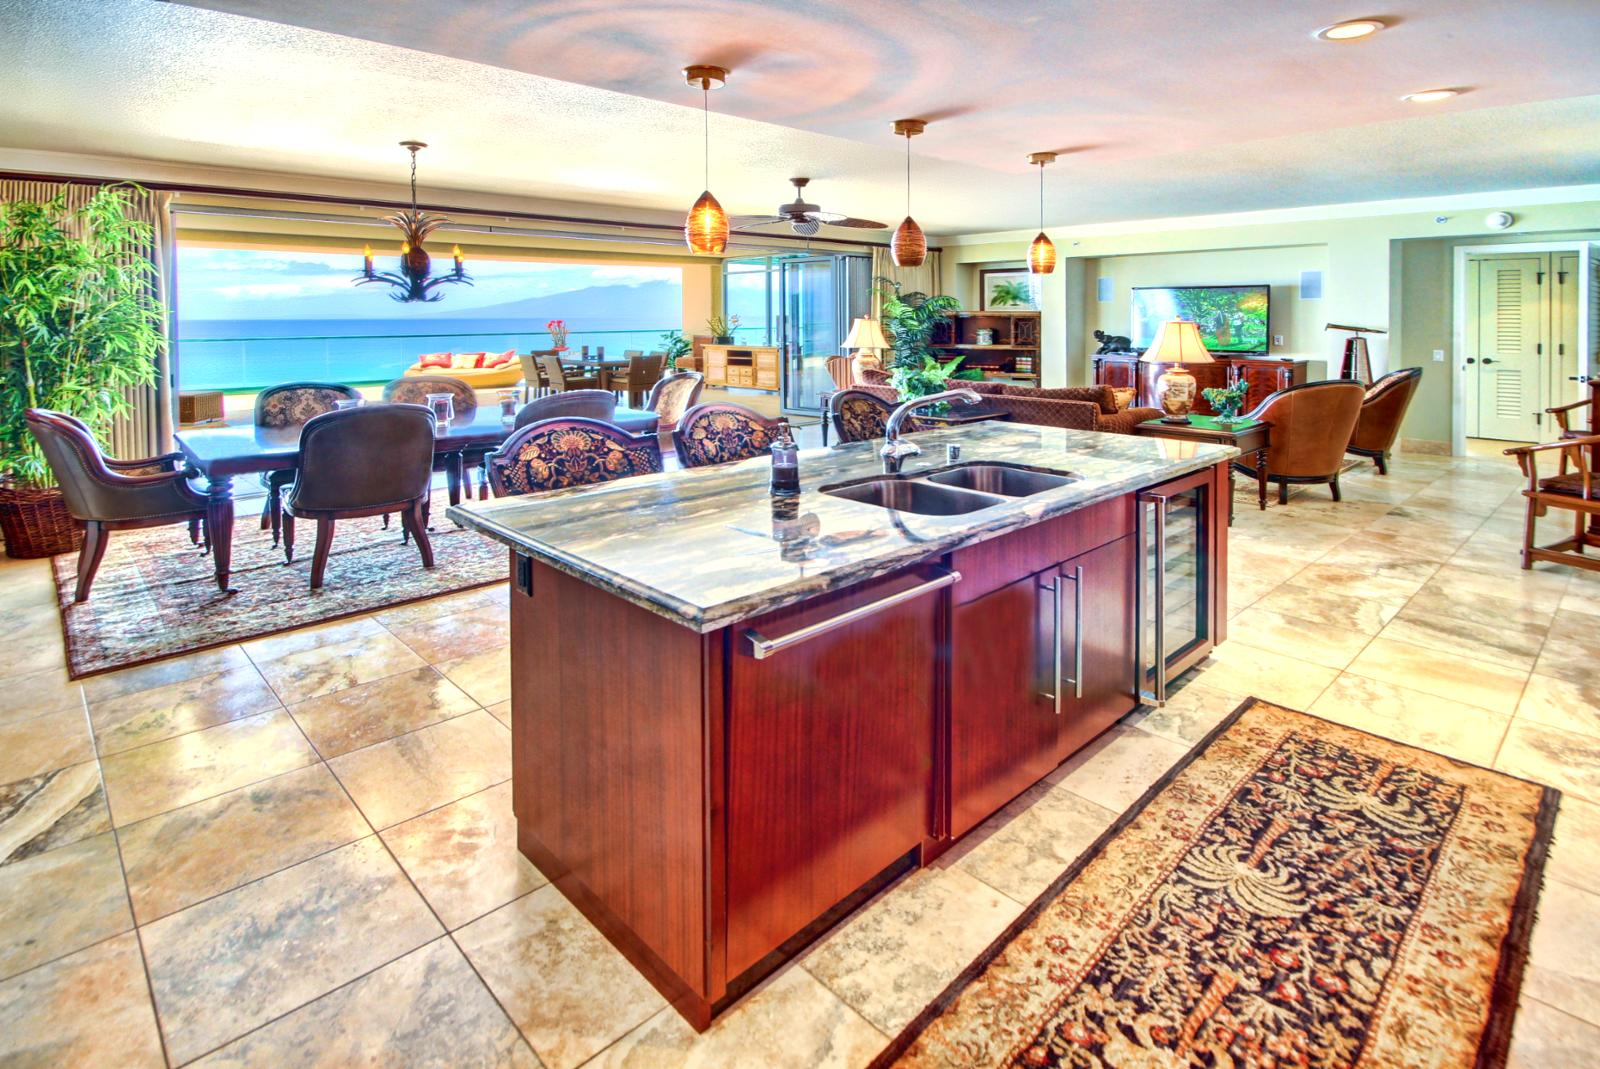 Large gourmet kitchen with full size Viking appliances and also a great view while making that frozen libation.